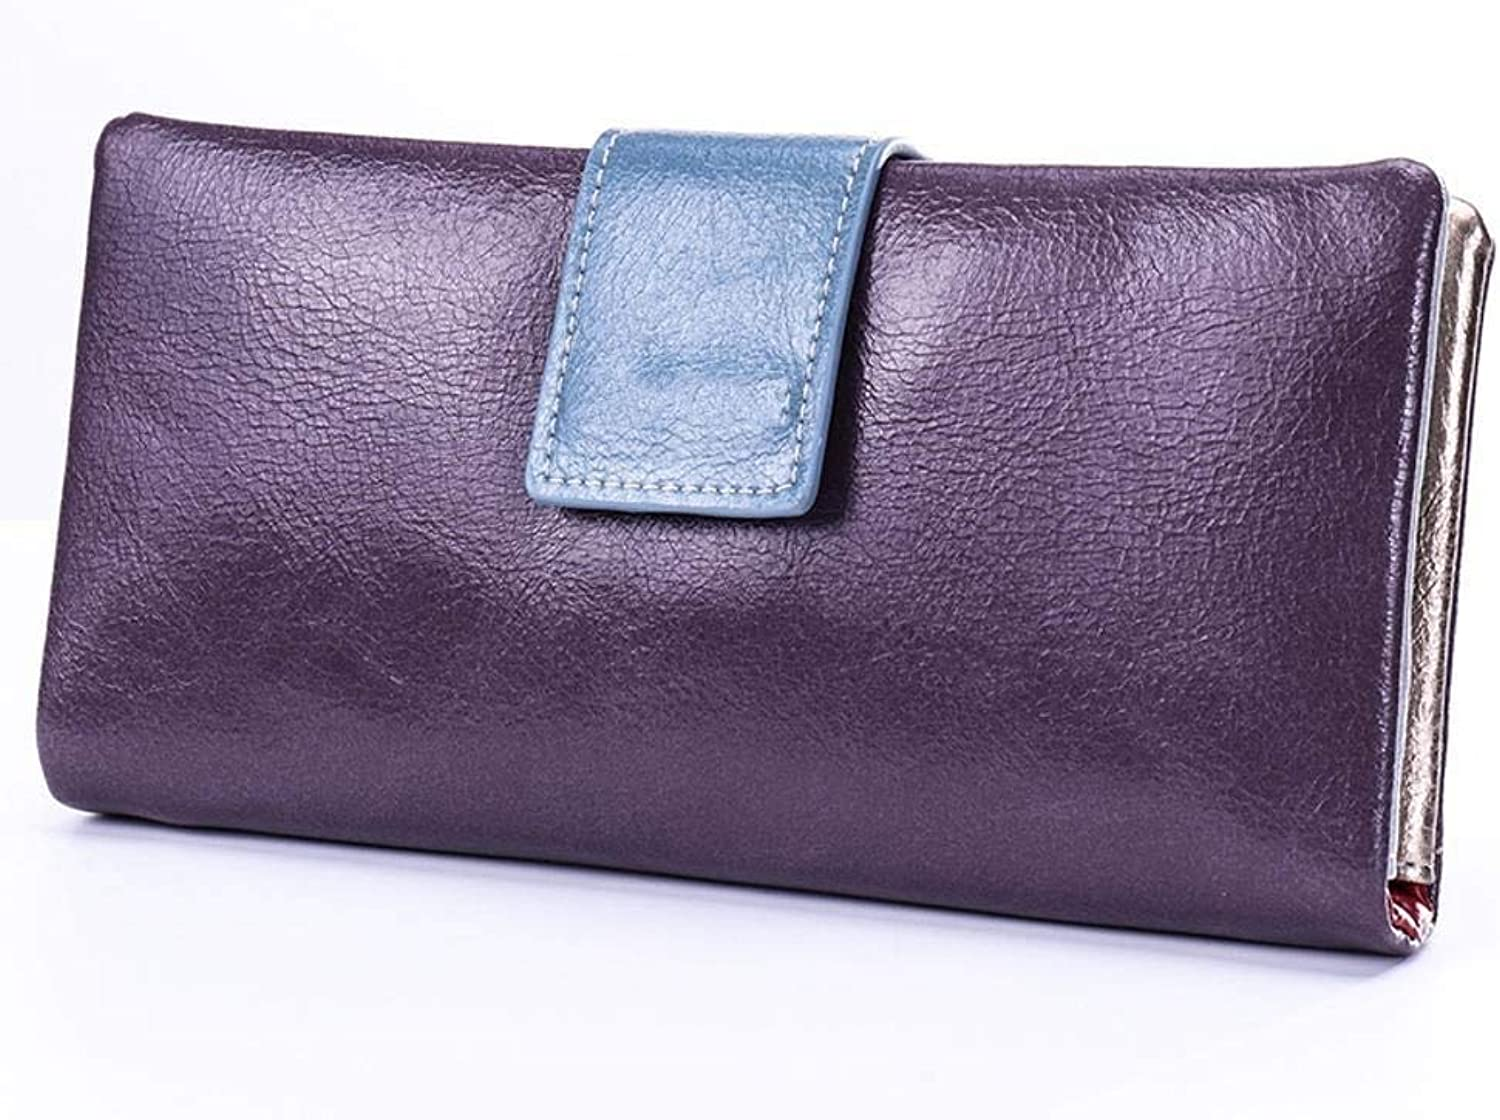 Girls Purse Women's Wallet Lady Purse Multifunctional Mobile Phone Bag Lady MultiCard Small Change Wrap Lady Hand Bag (color   E)